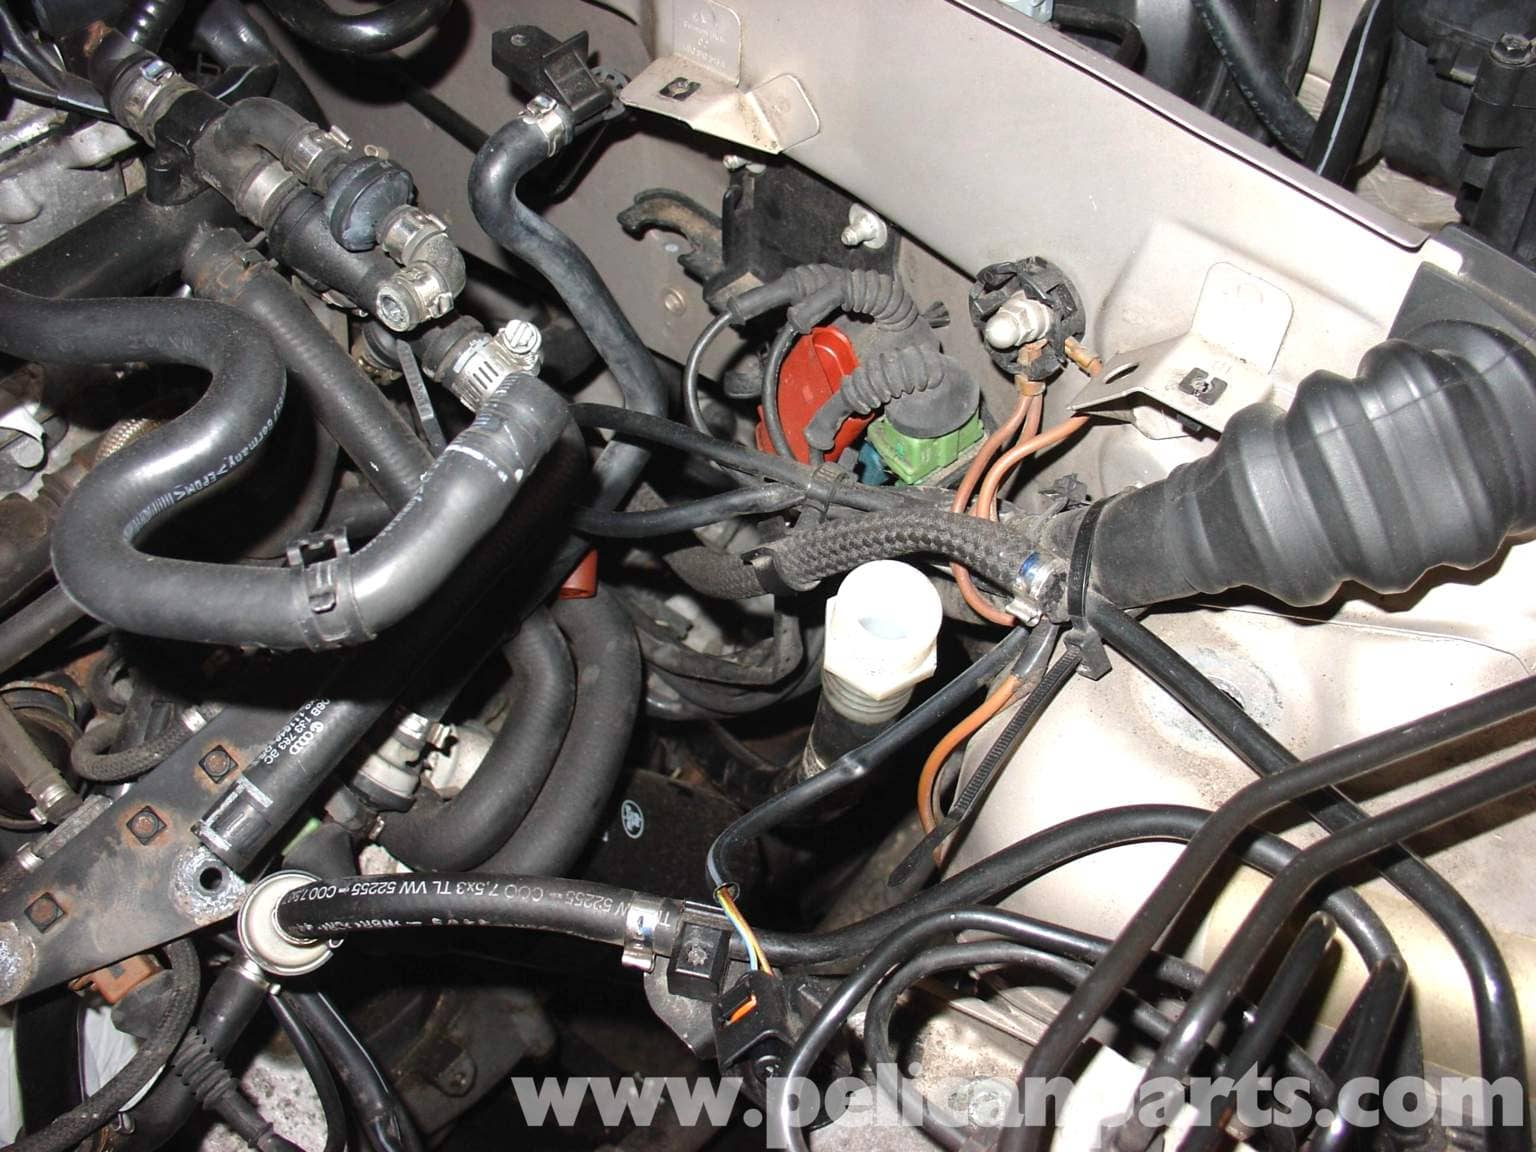 Automatic Transmission Problems Shifting Gears >> Audi A4 1.8T Volkswagen Manual Transmission Fluid Change | Golf, Jetta, Passat & Beetle ...